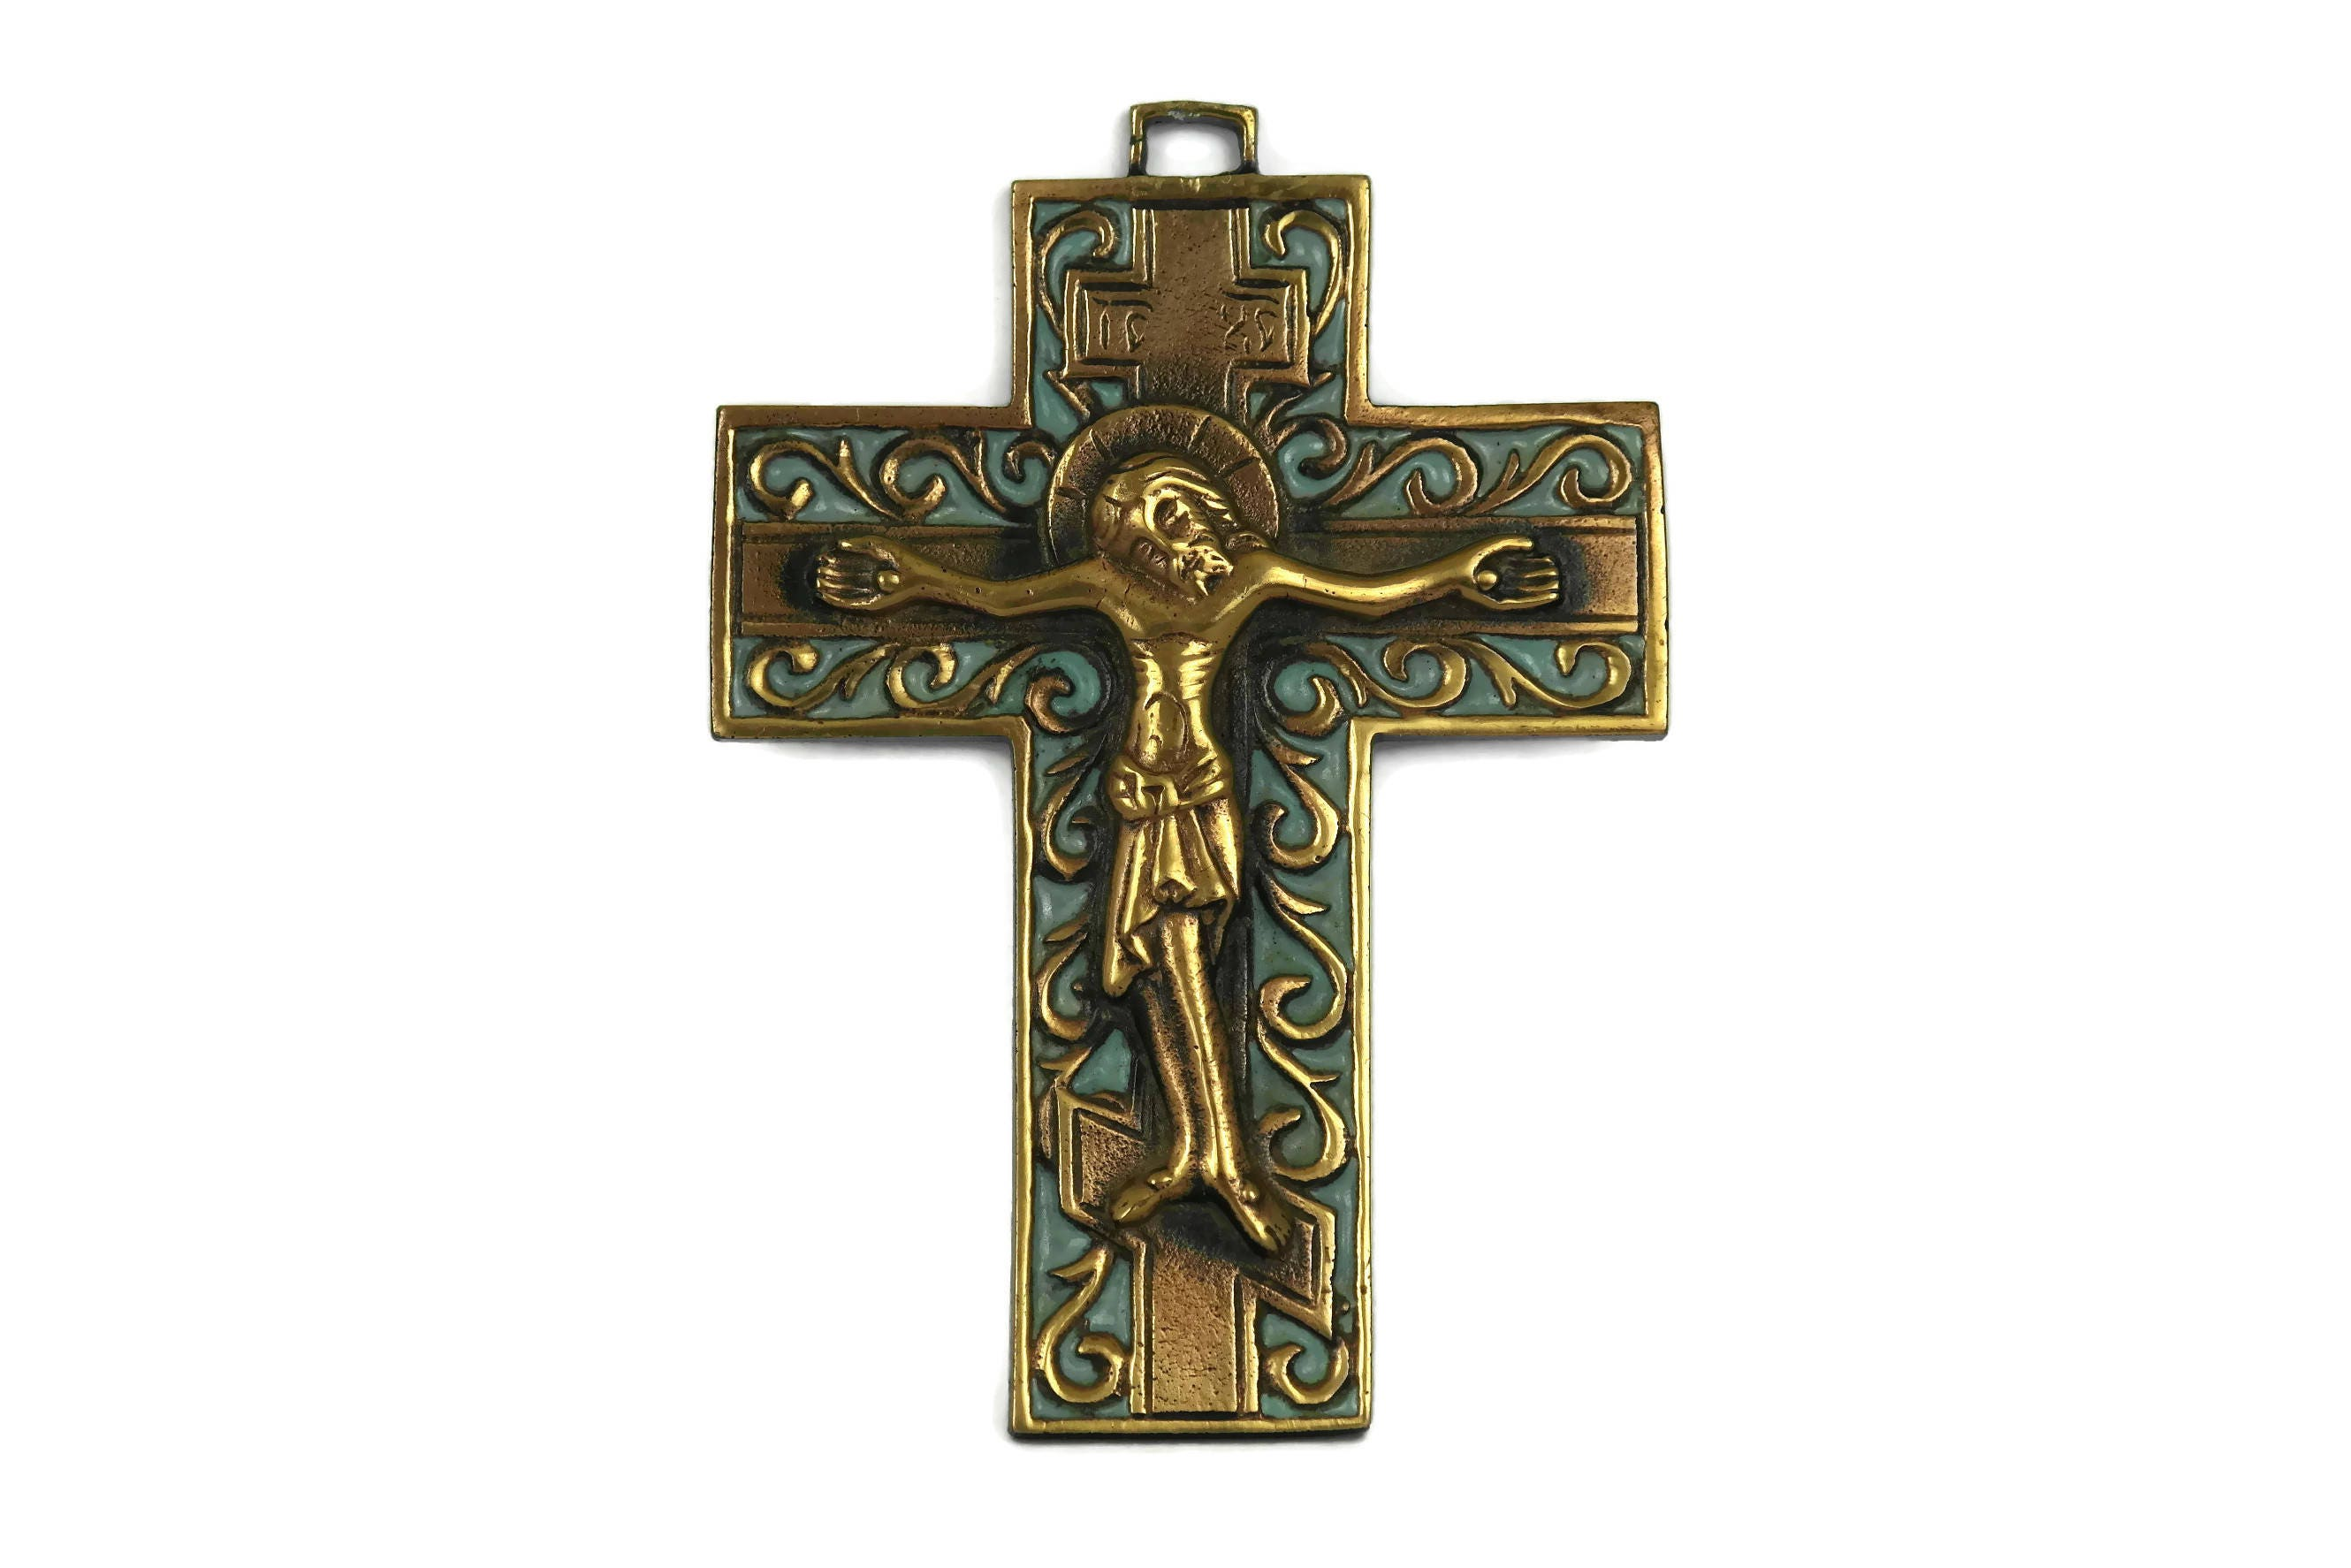 French copper and enamel crucifix mid century hanging cross french copper and enamel crucifix mid century hanging cross pendant enameled religious statement jewelry christian gift aloadofball Choice Image